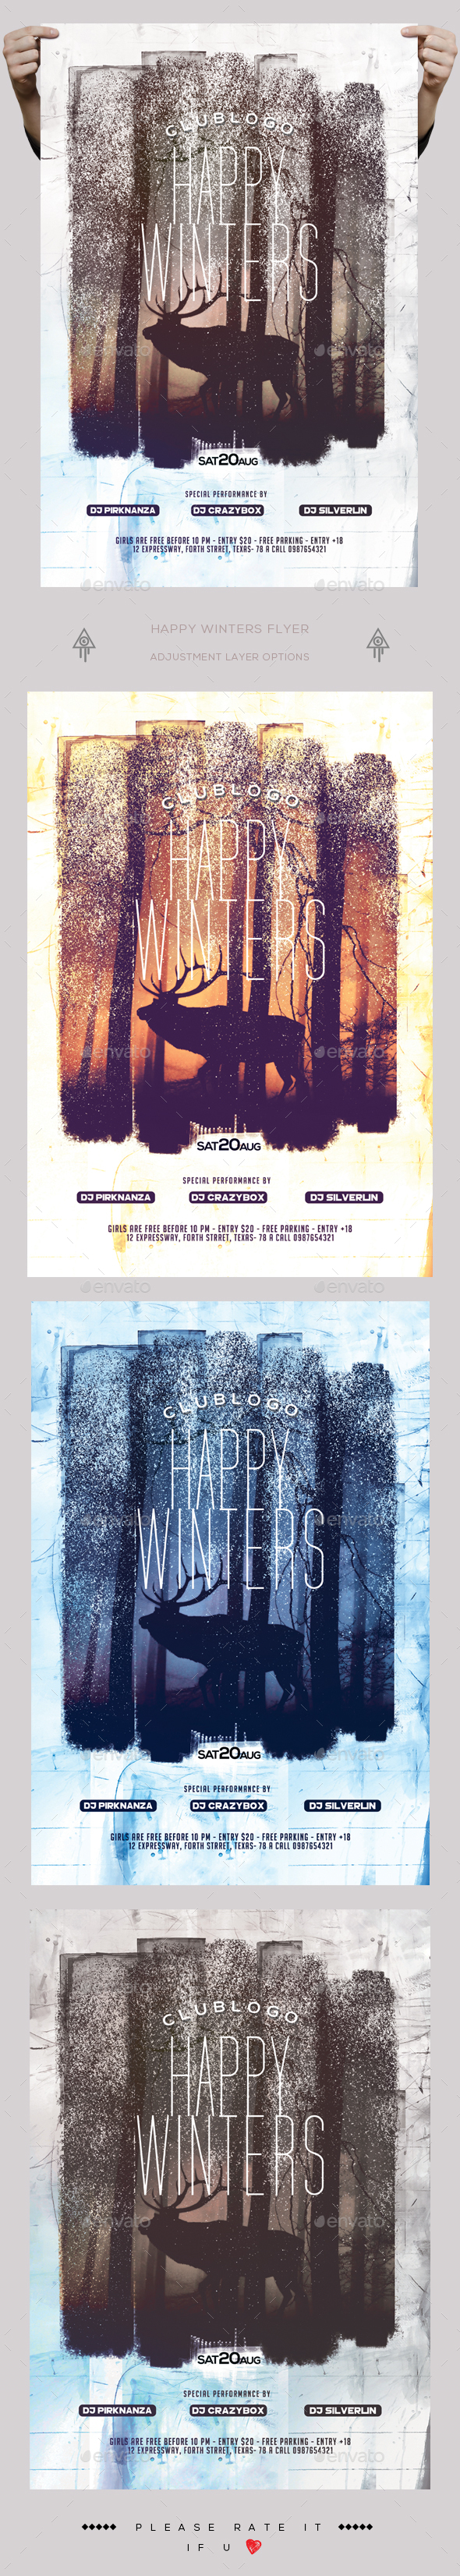 happy winters flyer by creatwitter graphicriver